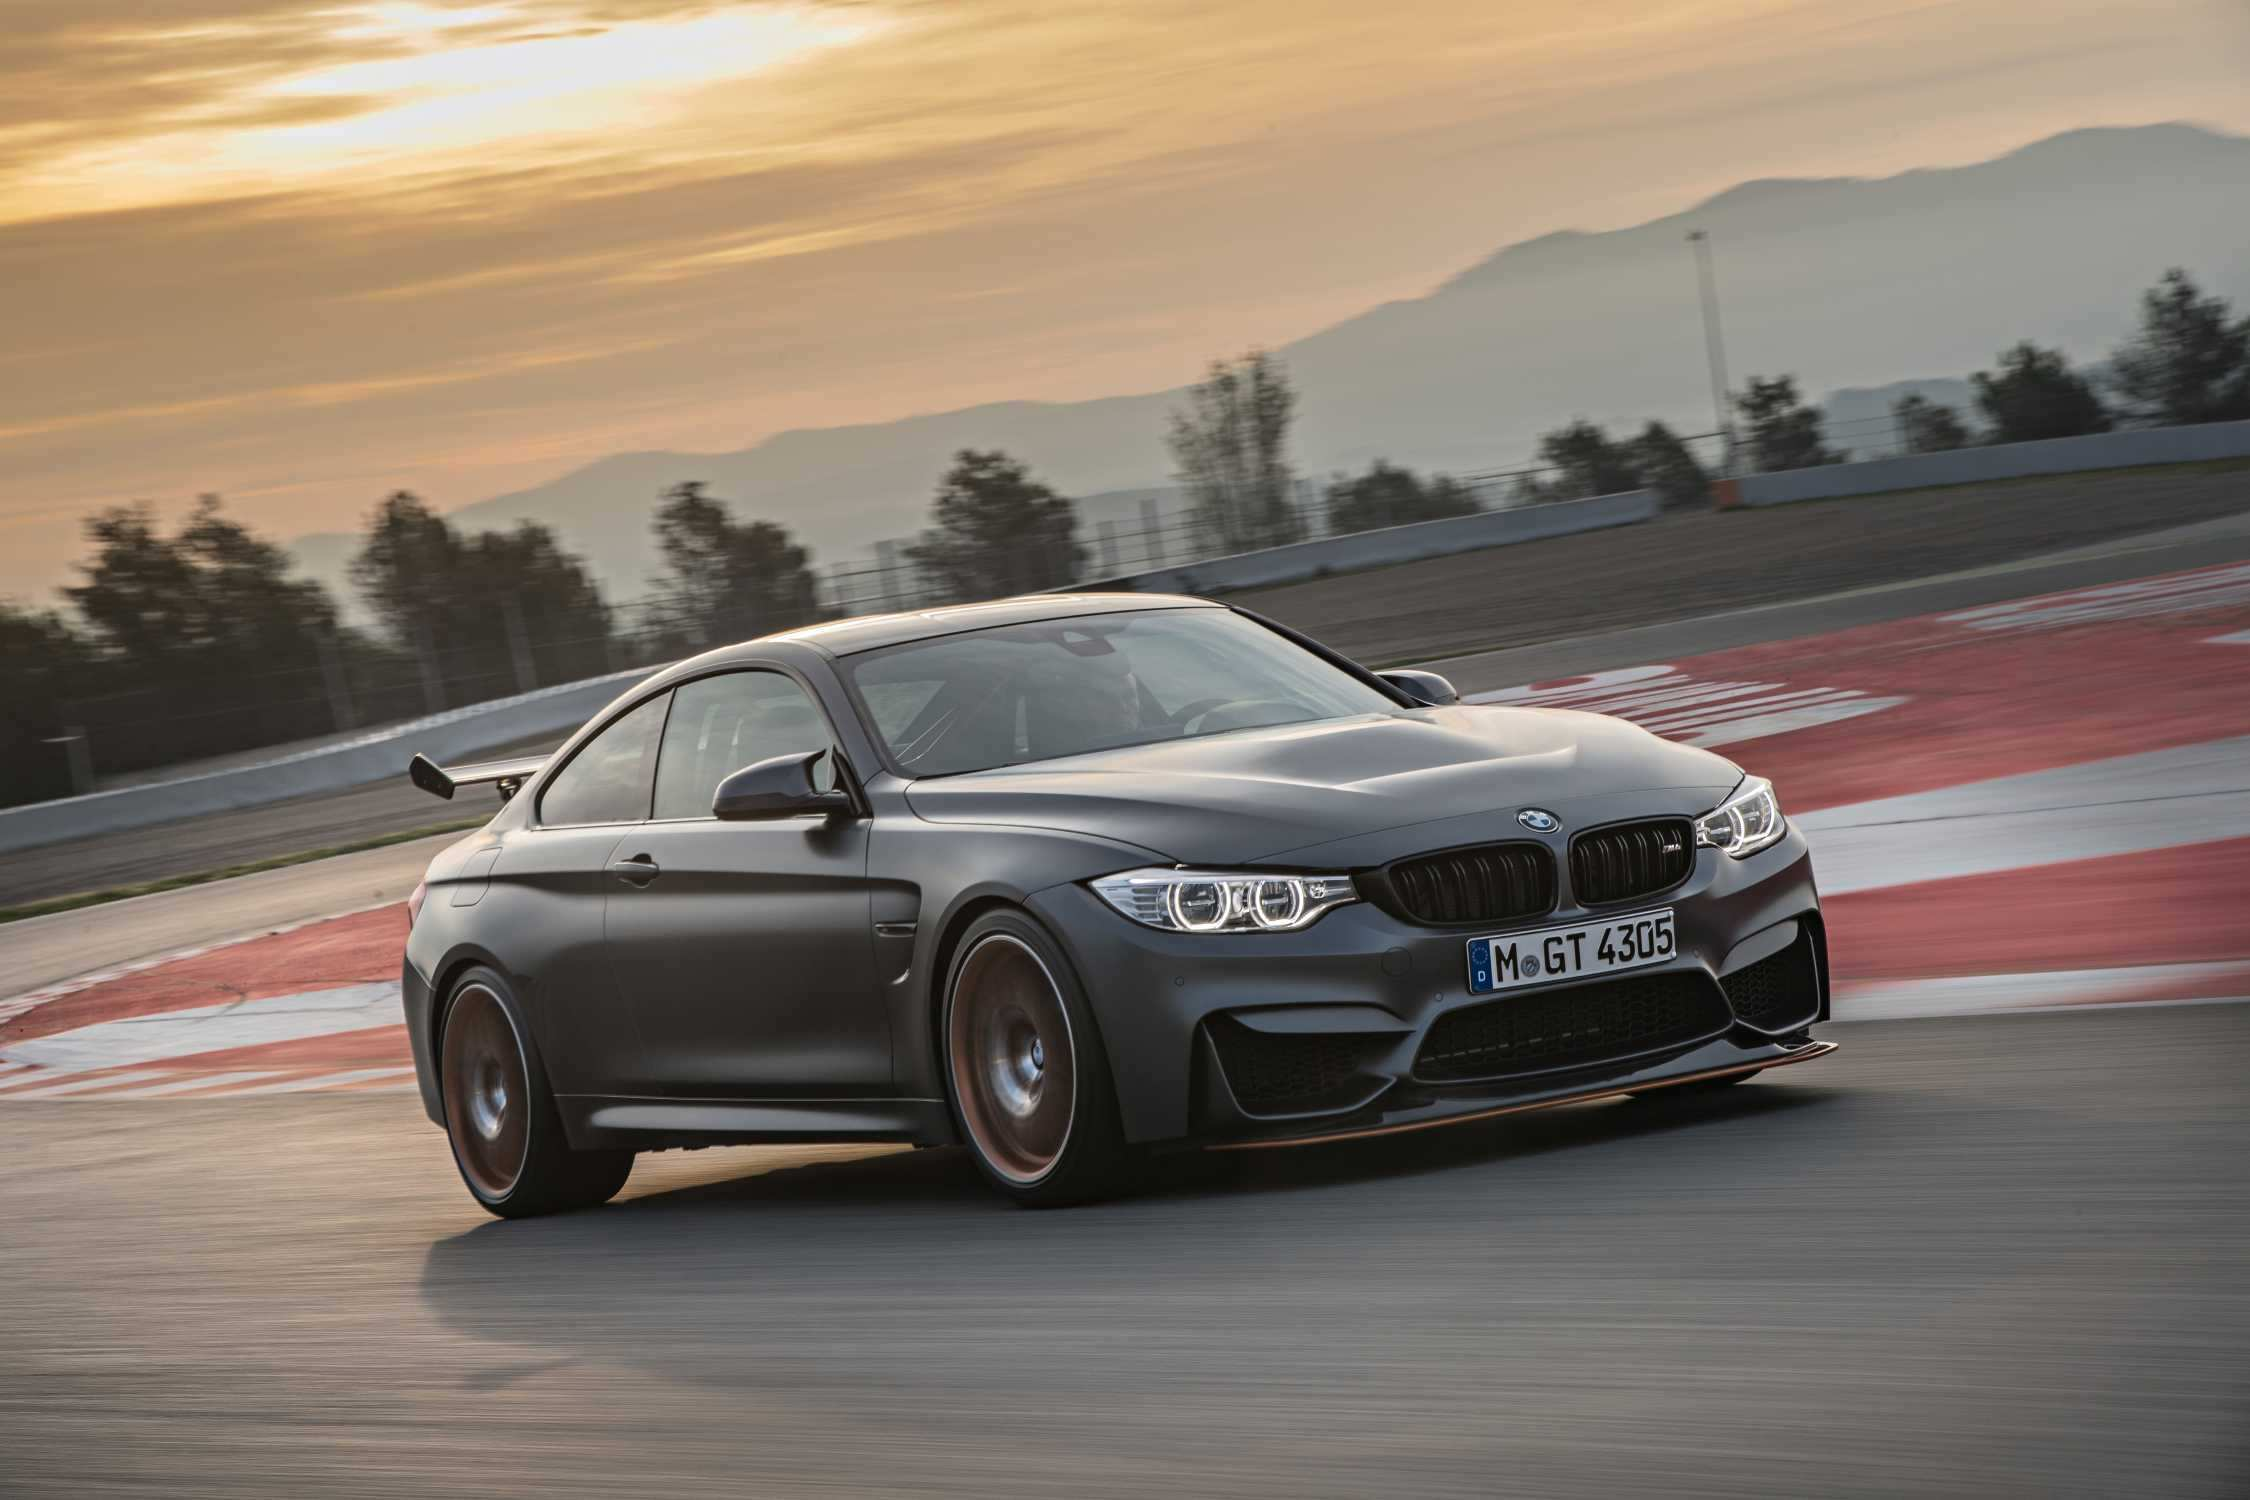 30 Best 2019 BMW M4 Gts Release Date And Concept